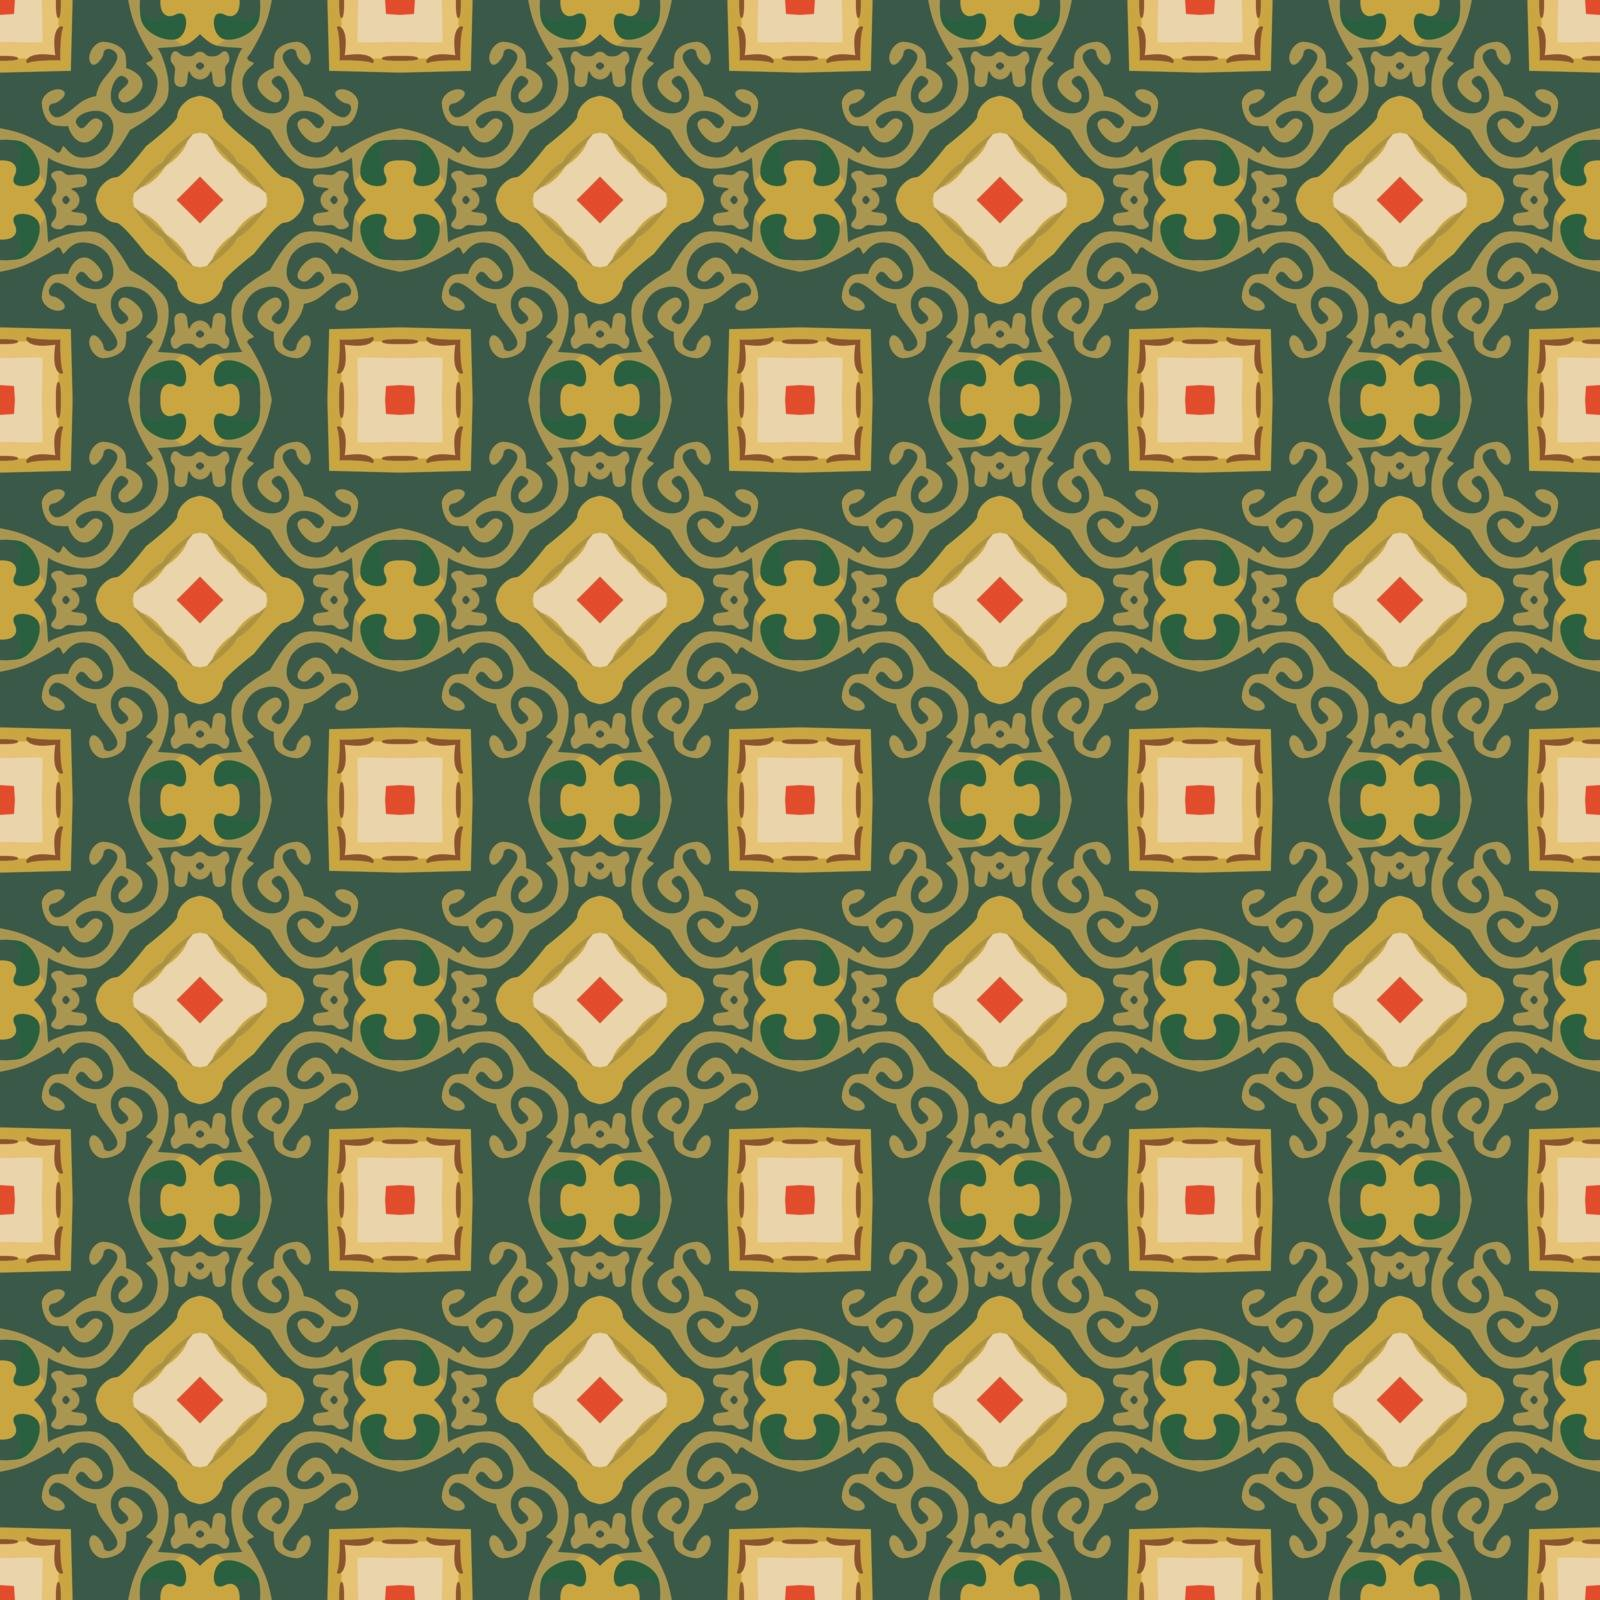 Seamless illustrated pattern made of abstract elements in beige, yellow, red, brown and green